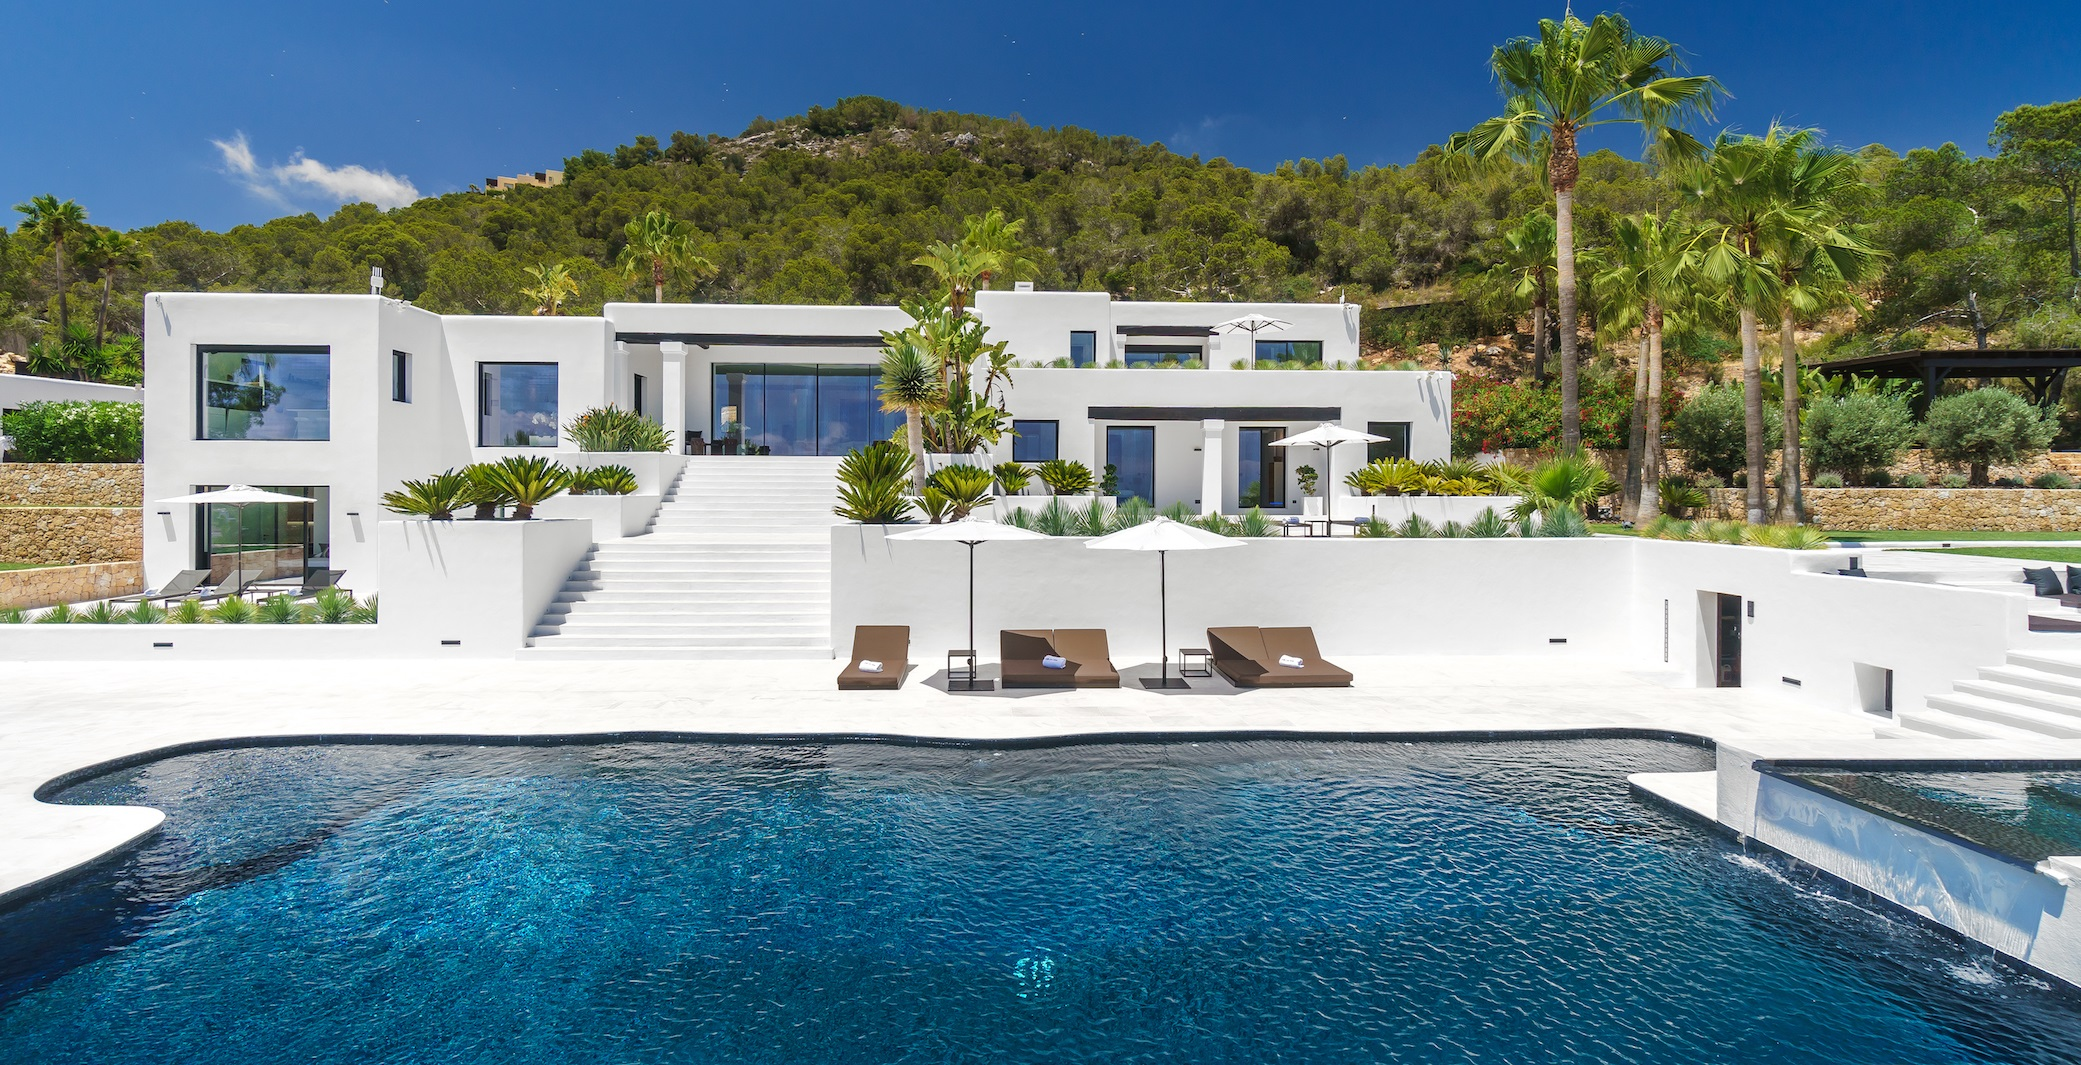 Luxury Villa Ibizasense Rent A Luxury Villa And Car In Ibiza Spain